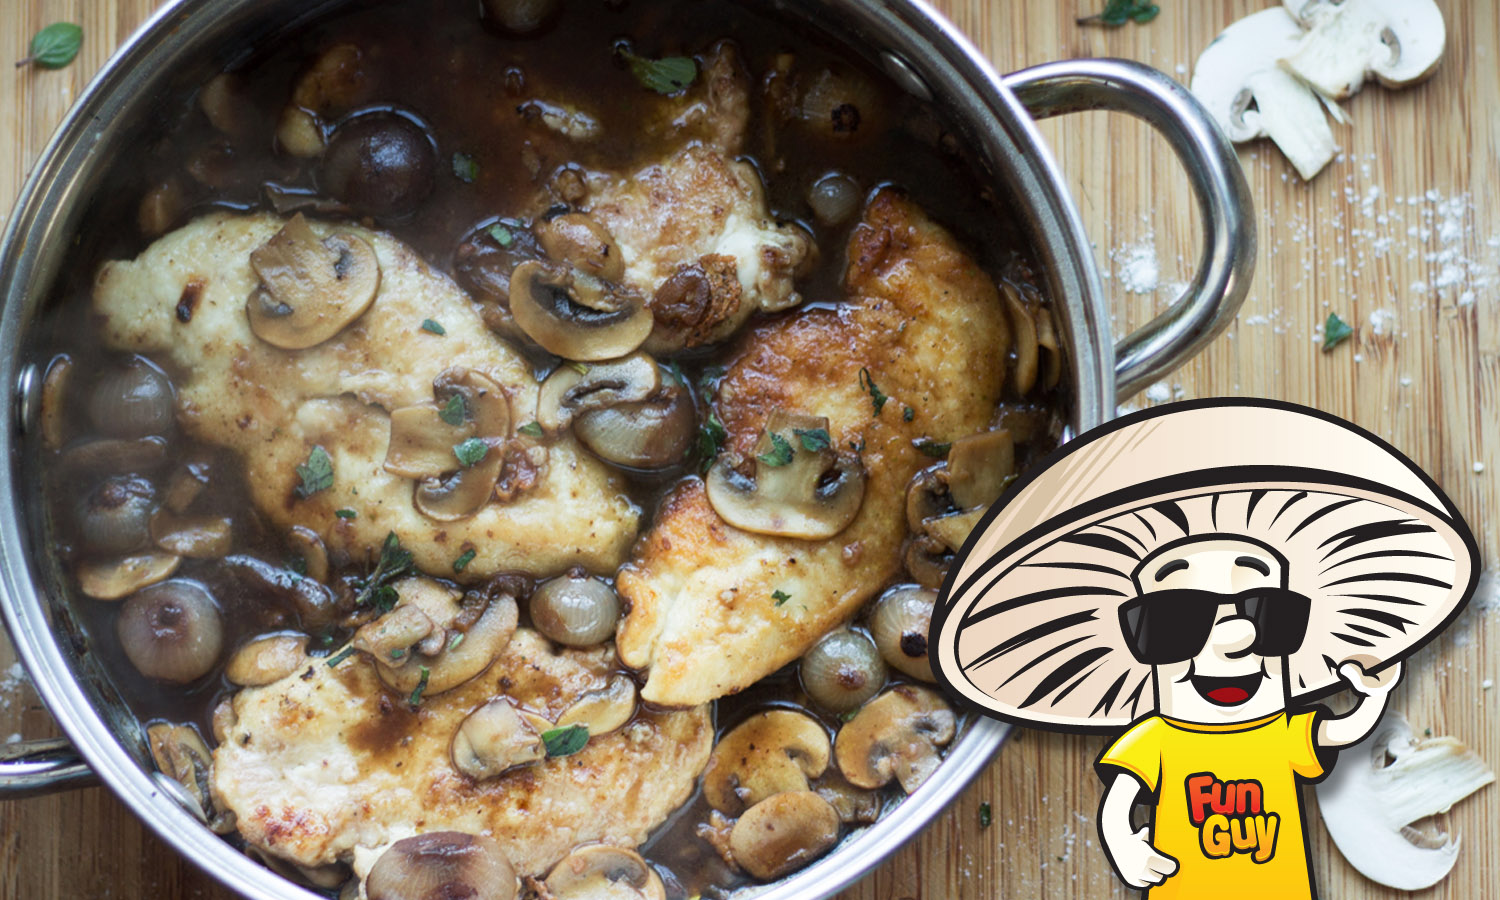 FunGuy Mushrooms Chicken and FunGuy Mushrooms with Port ...